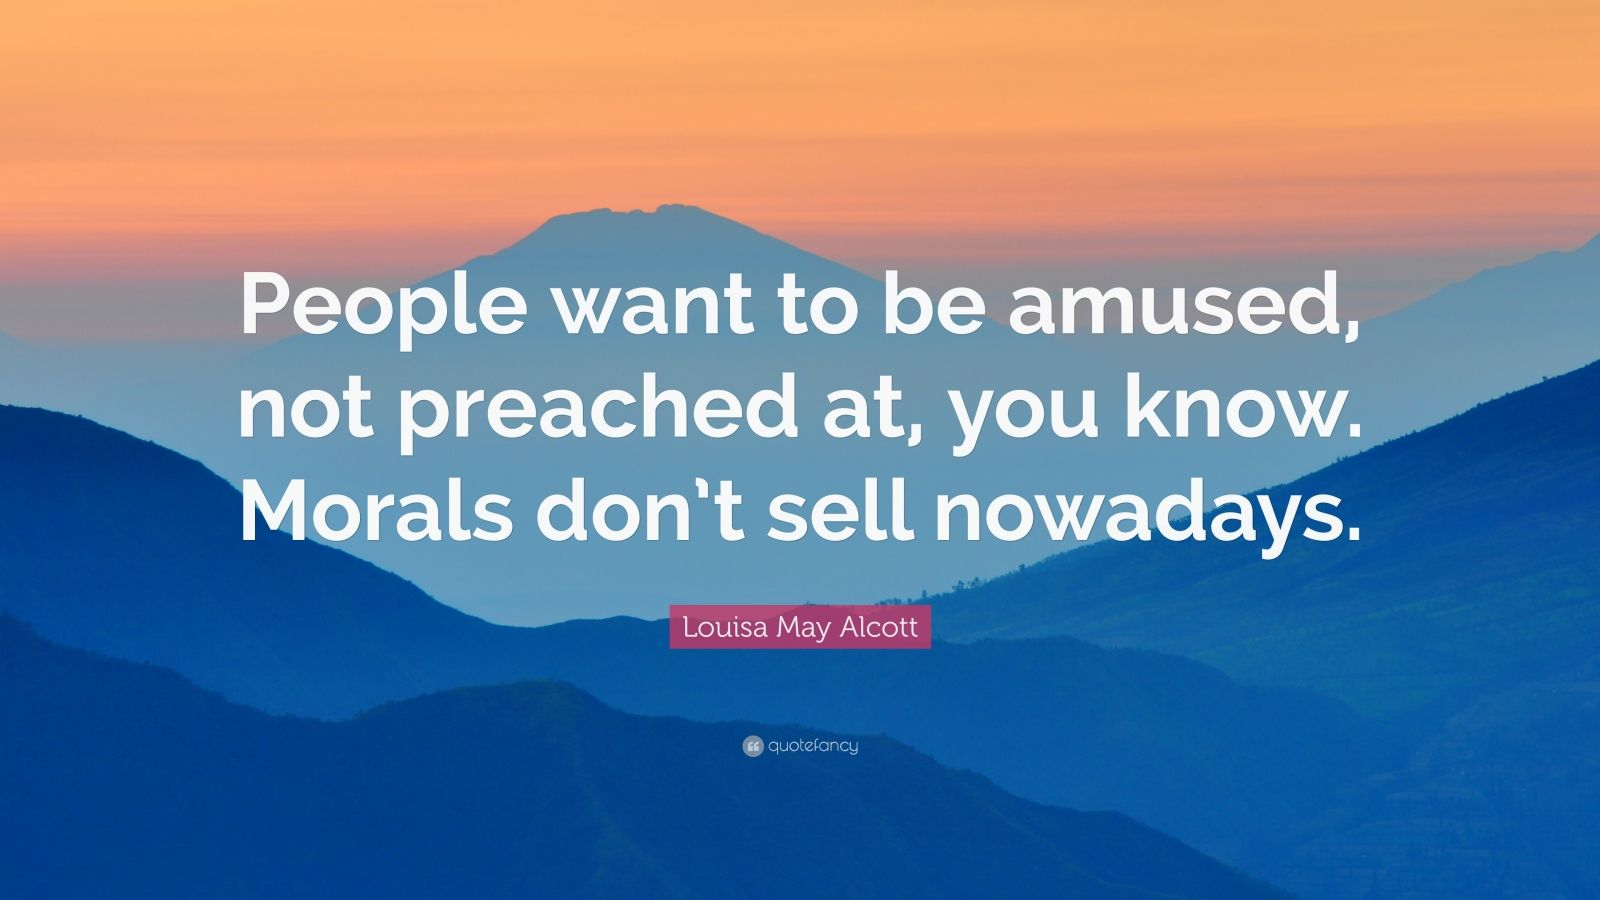 """Louisa May Alcott Quote: """"People want to be amused, not preached at, you know. Morals don't sell nowadays."""""""